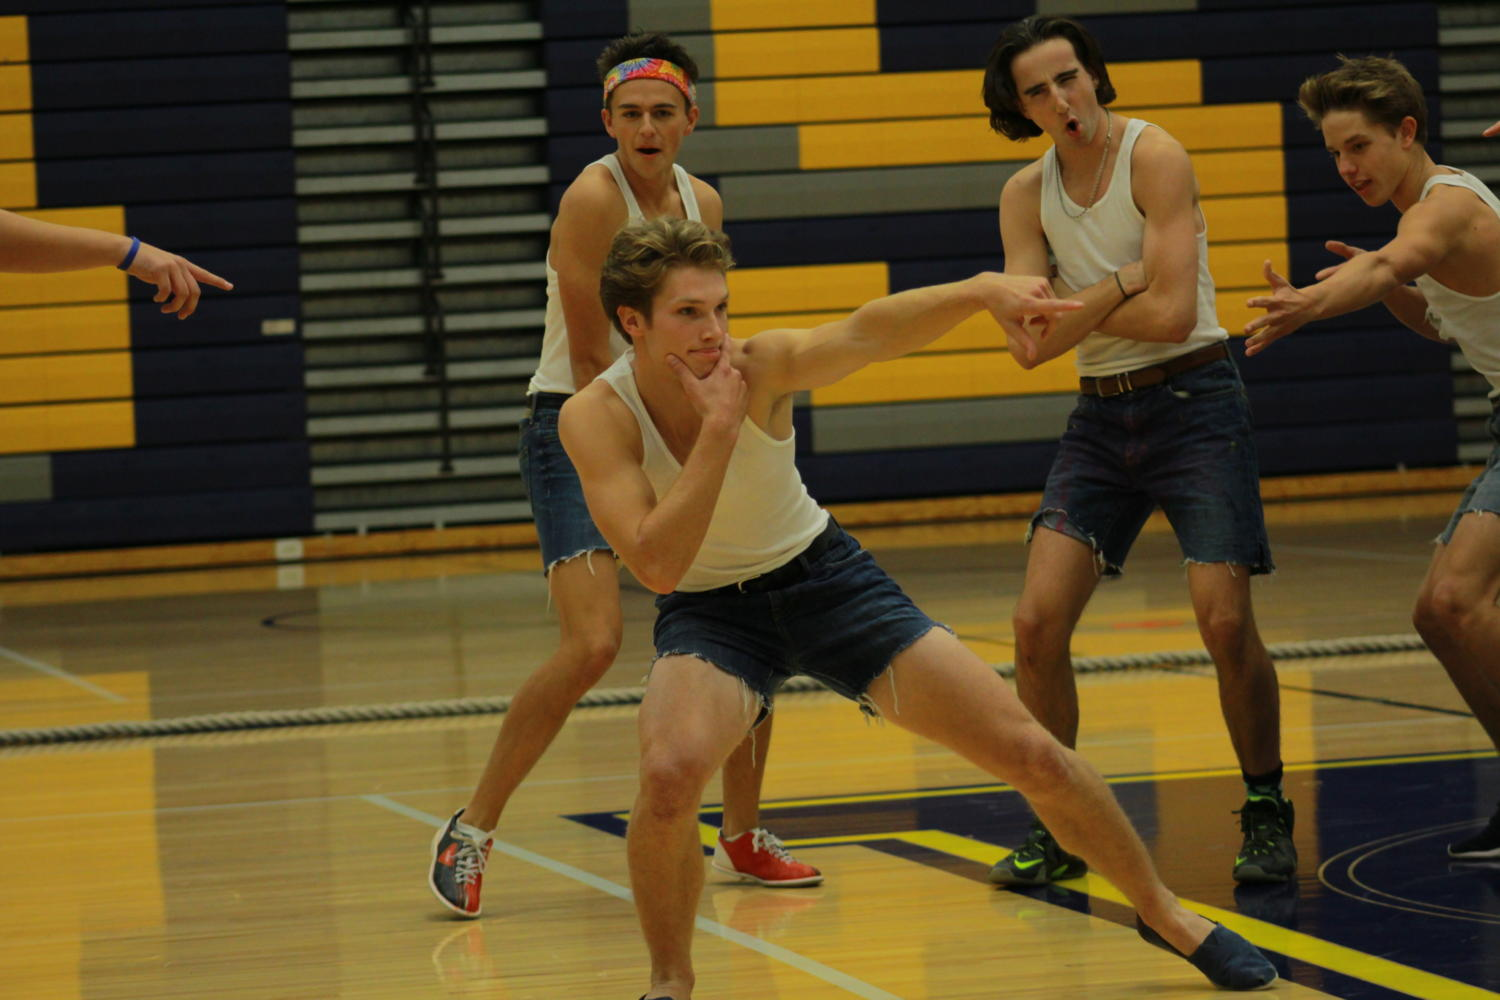 The Spirit Assembly ends Homecoming week on a high note